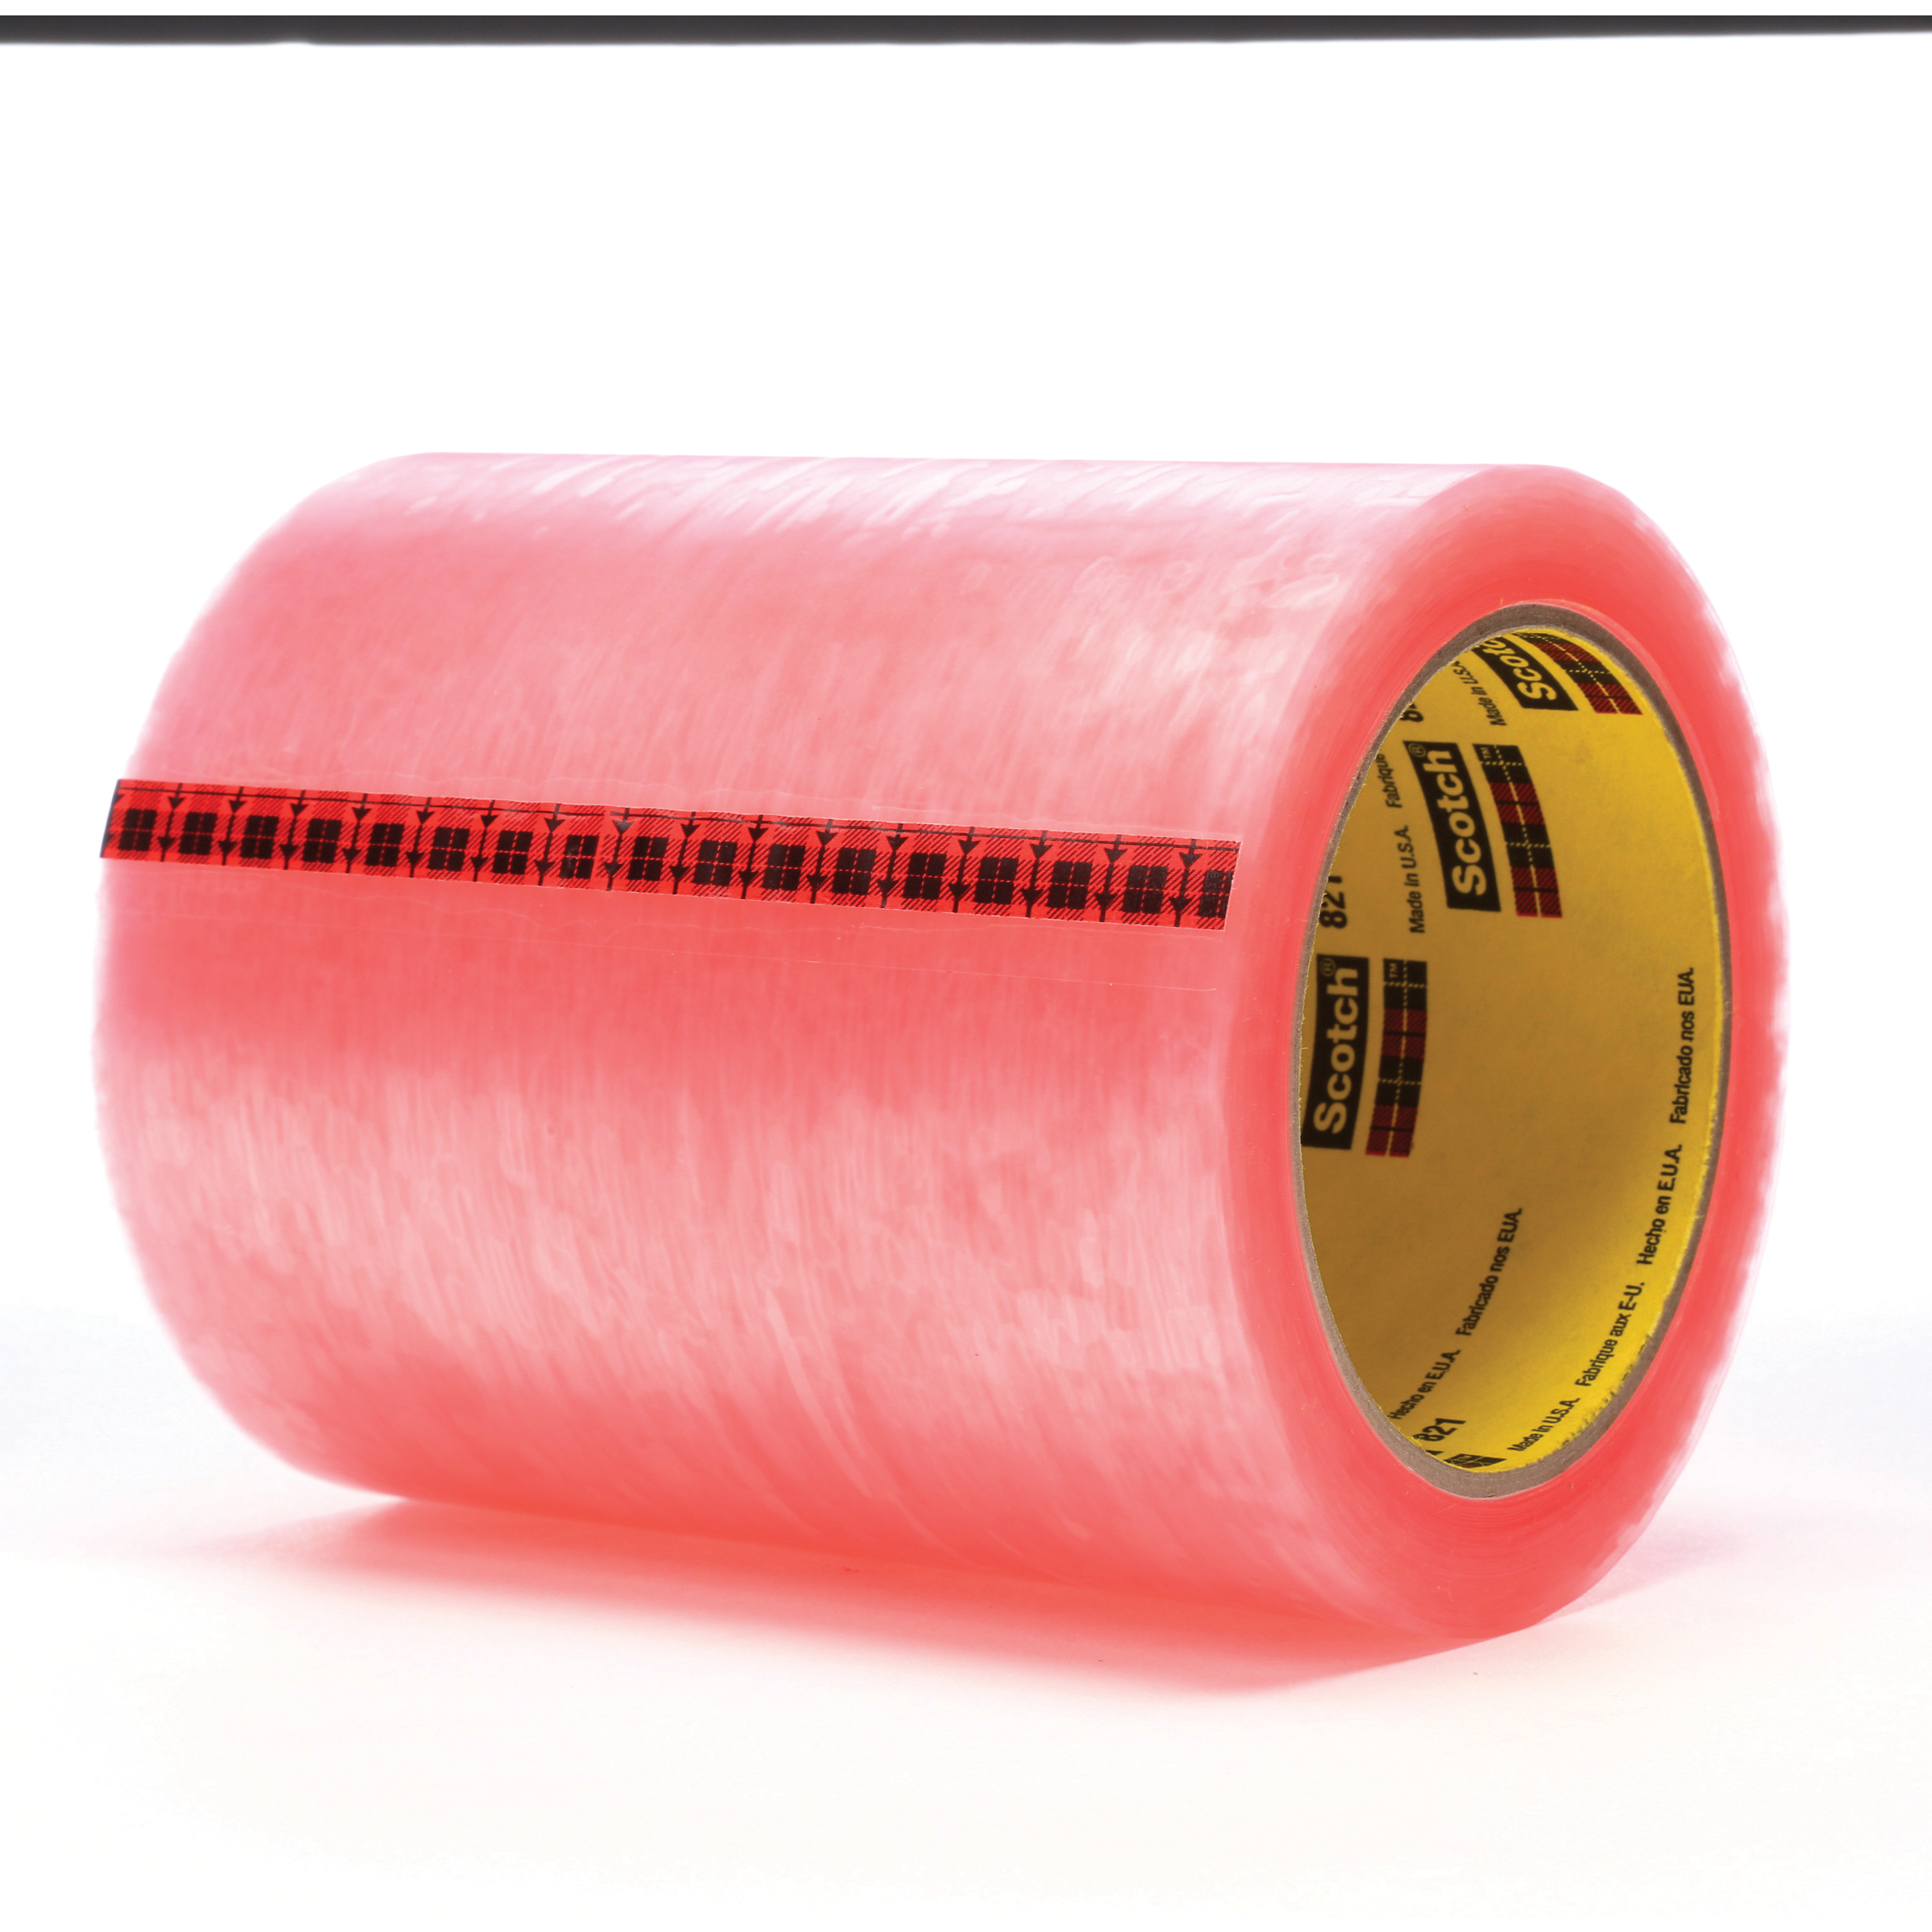 Scotch® 021200-04134 Label Protection Tape, 72 yd L x 5 in W, 2.5 mil THK, Acrylic Adhesive, Acetate Backing, Pink